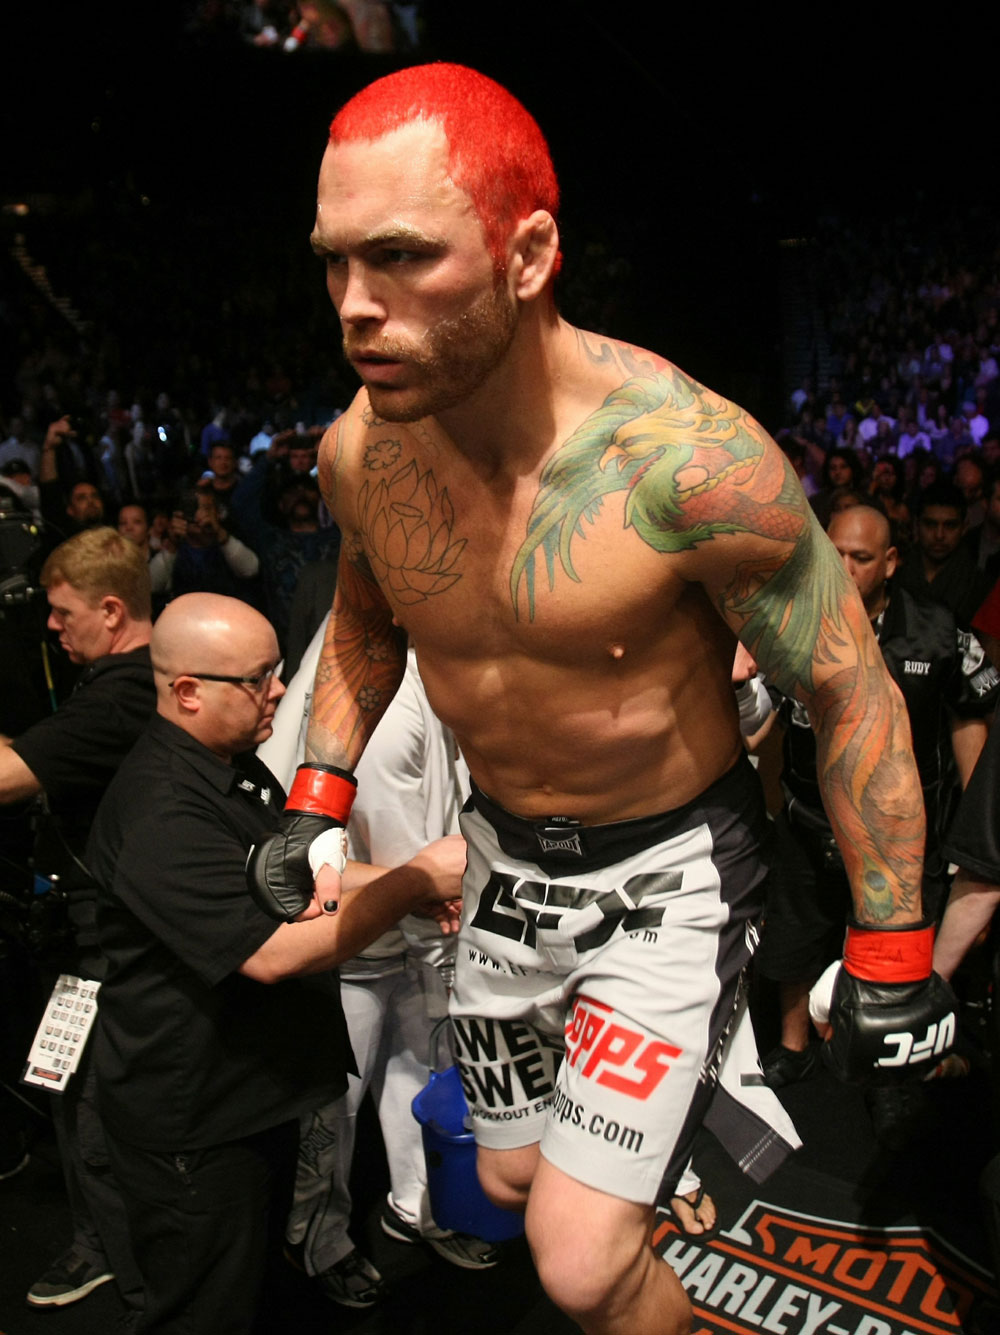 UFC 125: Chris Leben enters the ring.